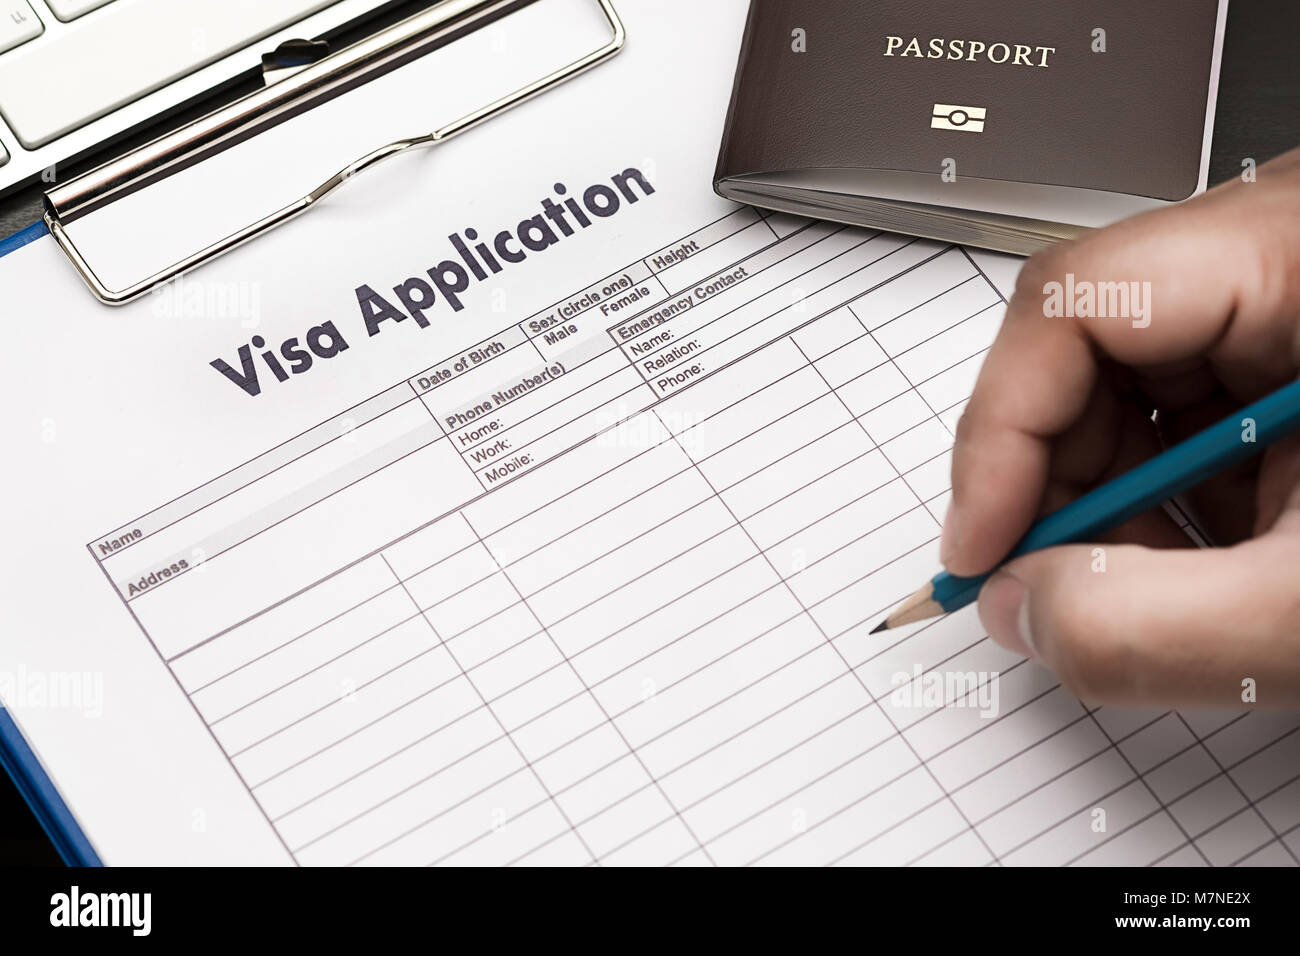 Visa application form to travel Immigration a document Money for ...